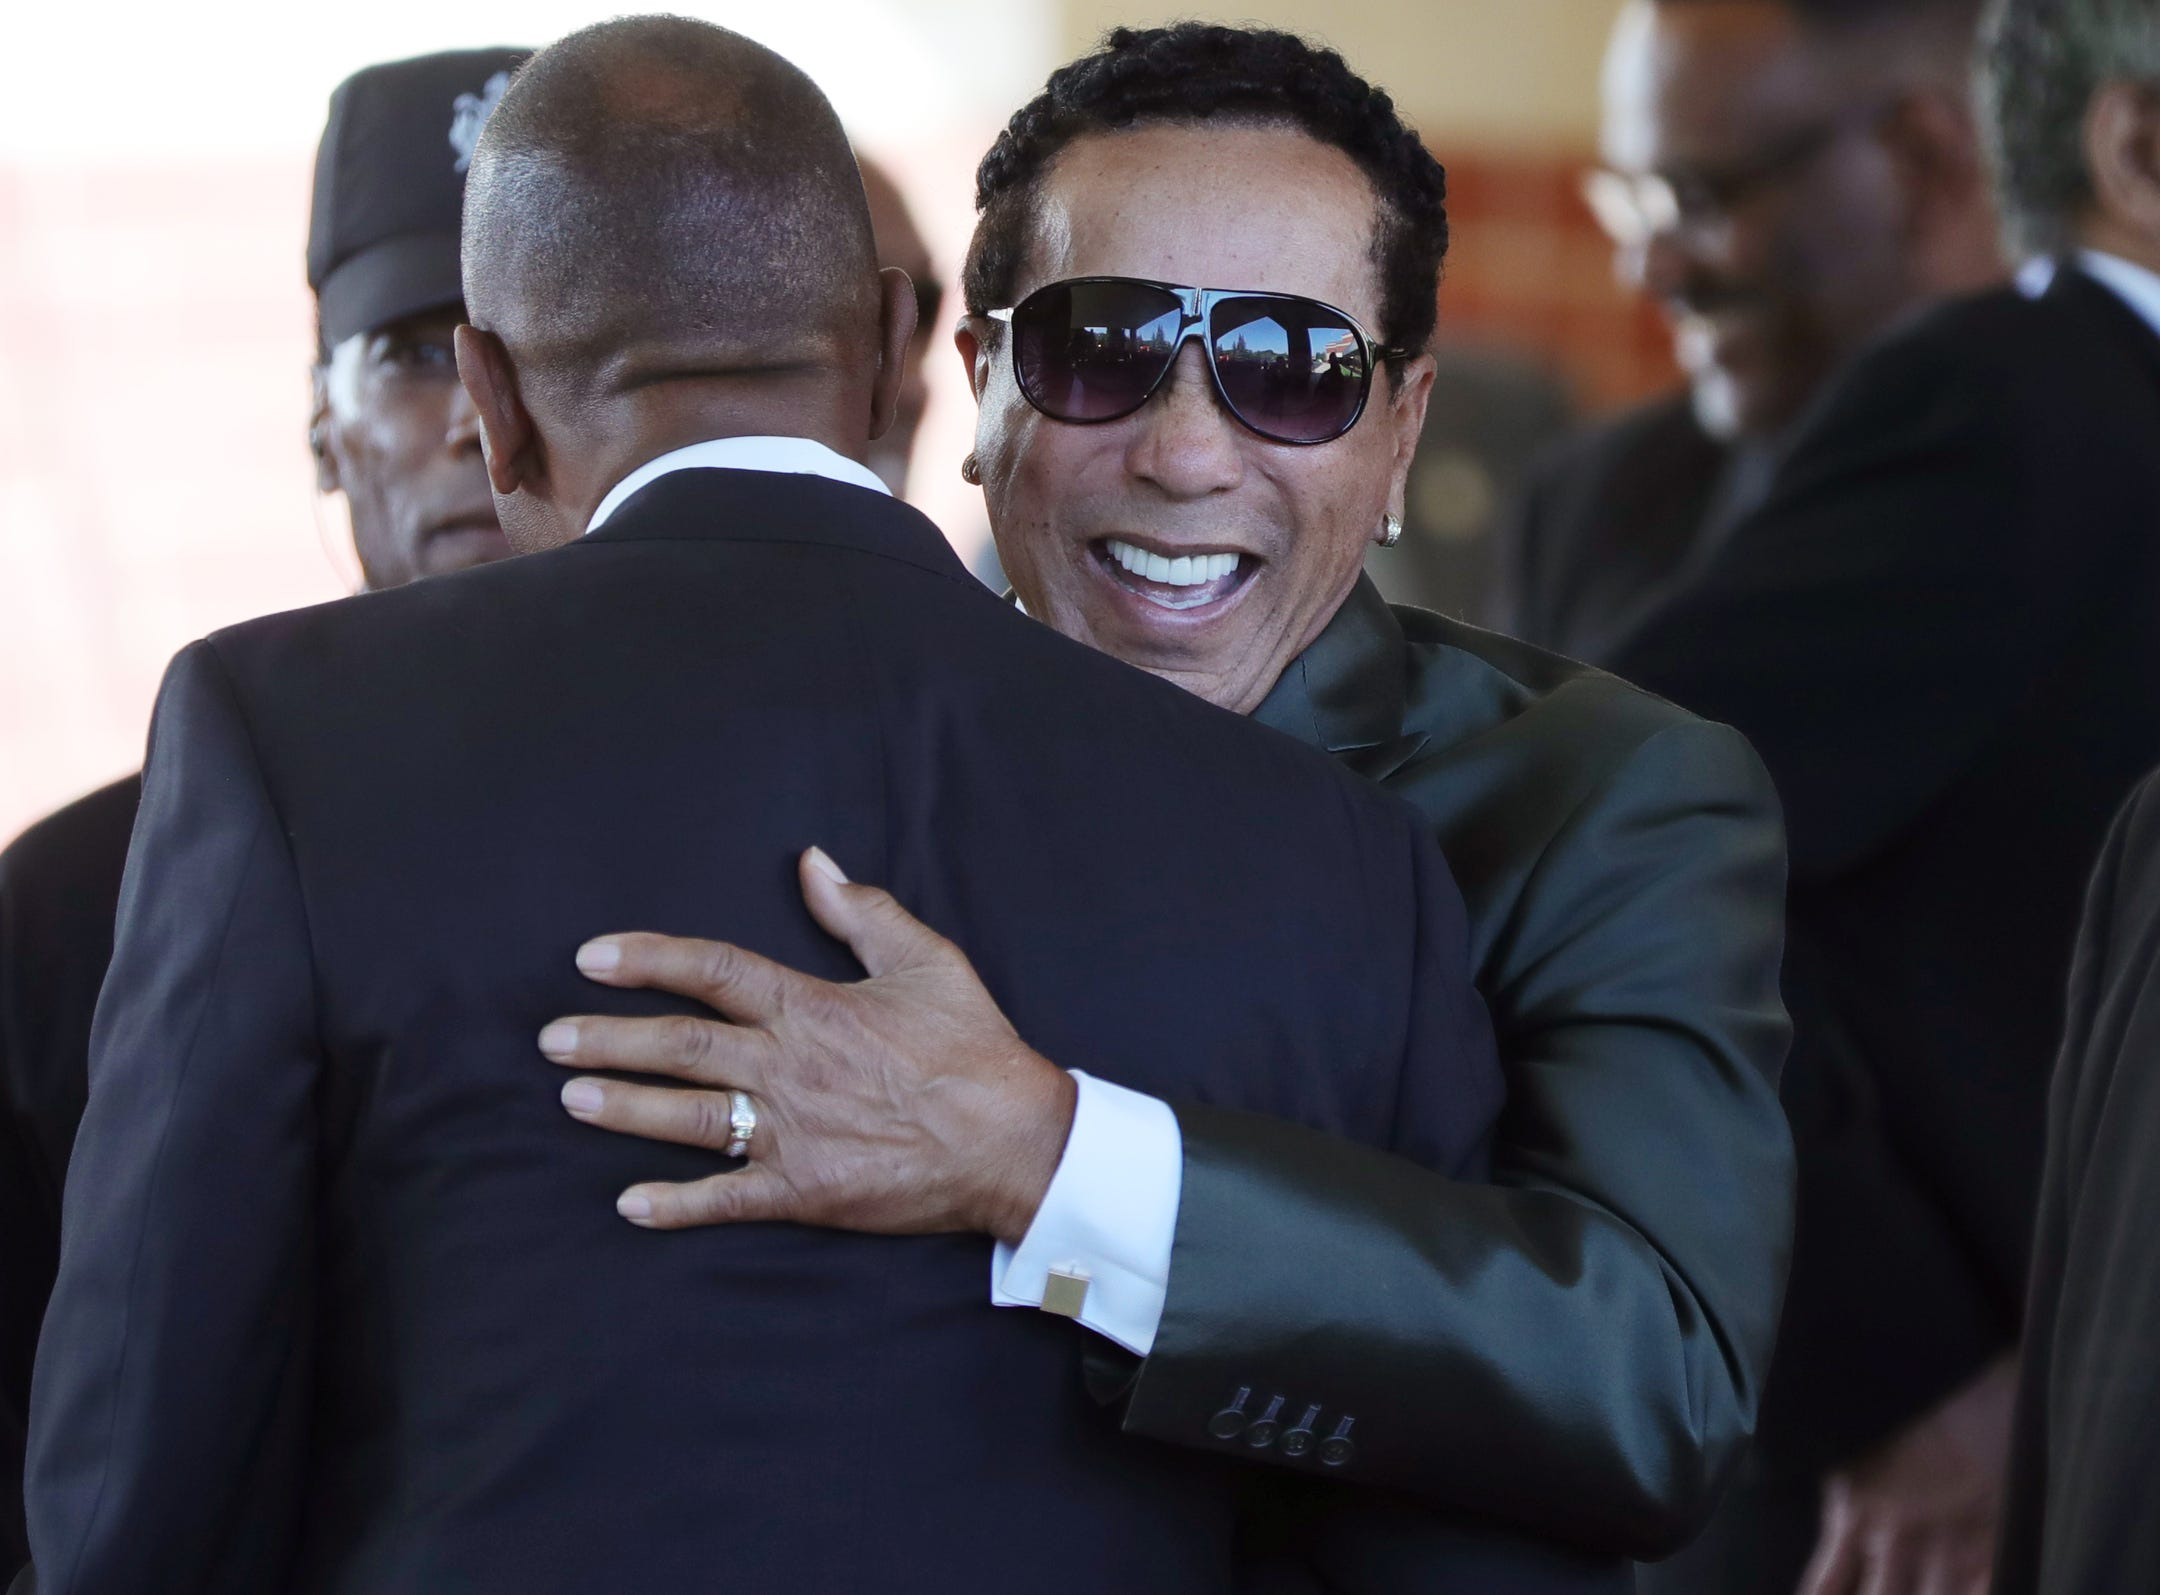 Smokey Robinson smiles as he hugs a man at the entrance of Greater Grace Temple for Aretha Franklin's funeral in Detroit on Friday, August 31, 2018.